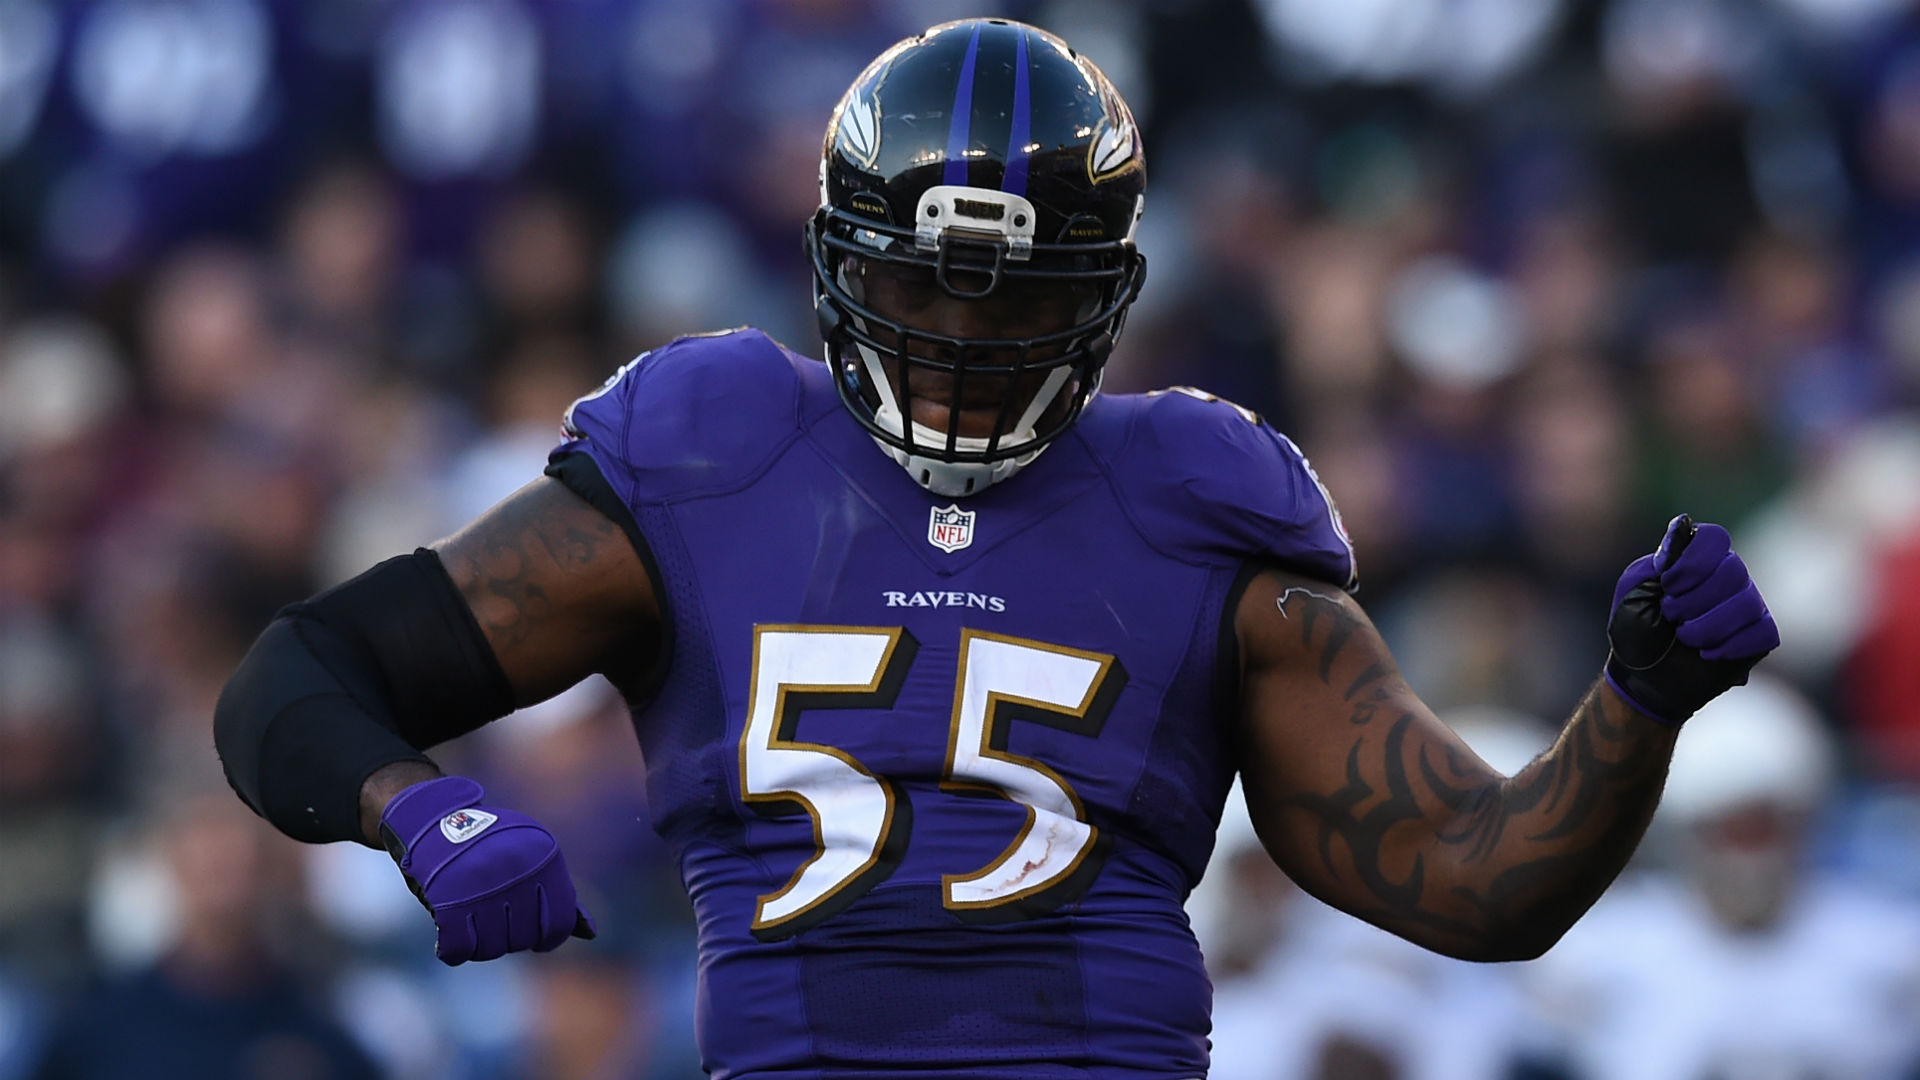 Terrell-Suggs-120914-Getty-FTR.jpg